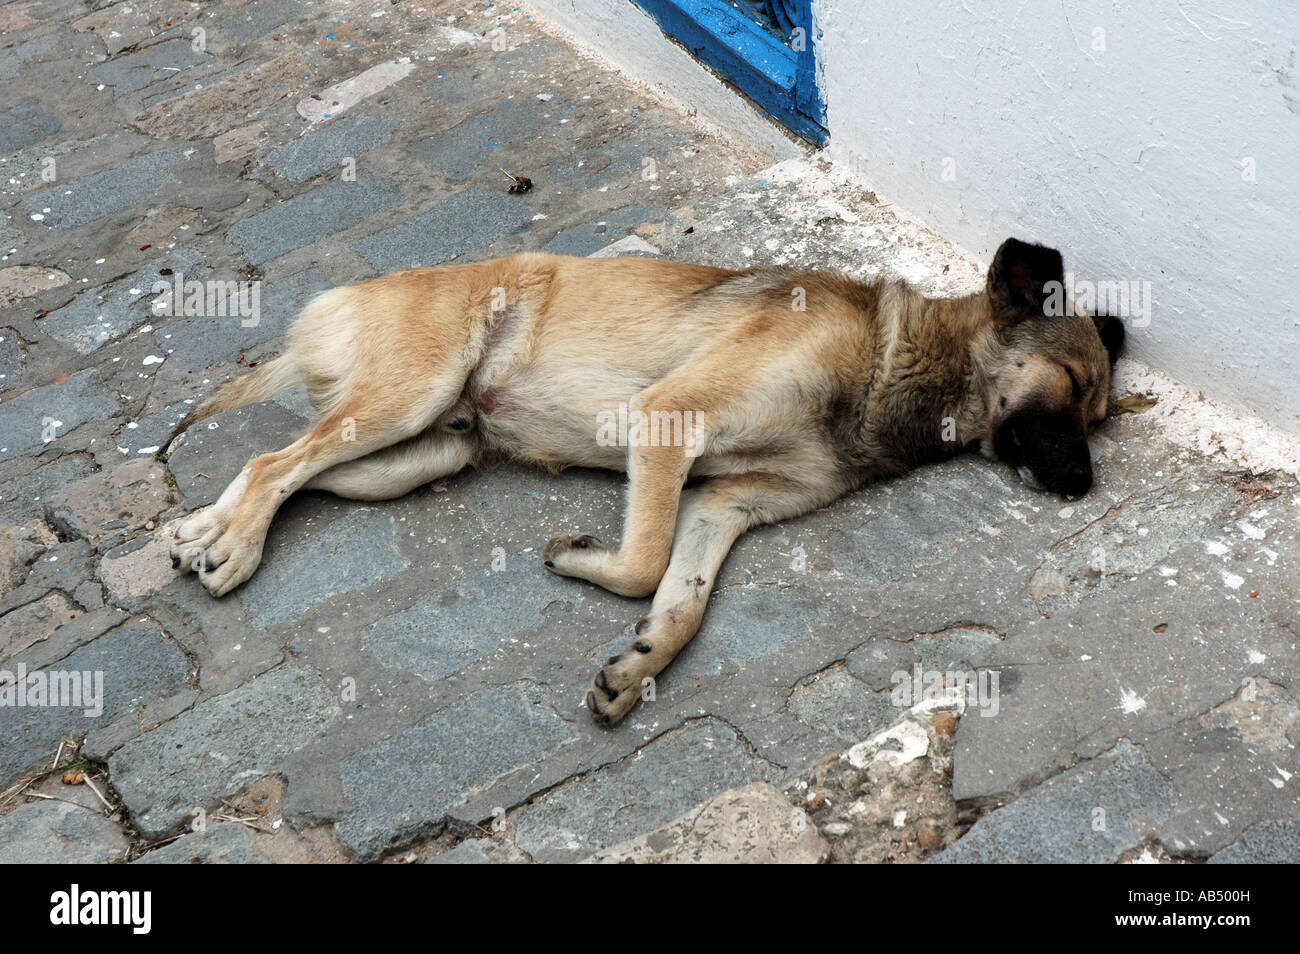 Sleeping dog in Sidi Bou Said, Tunisia - Stock Image